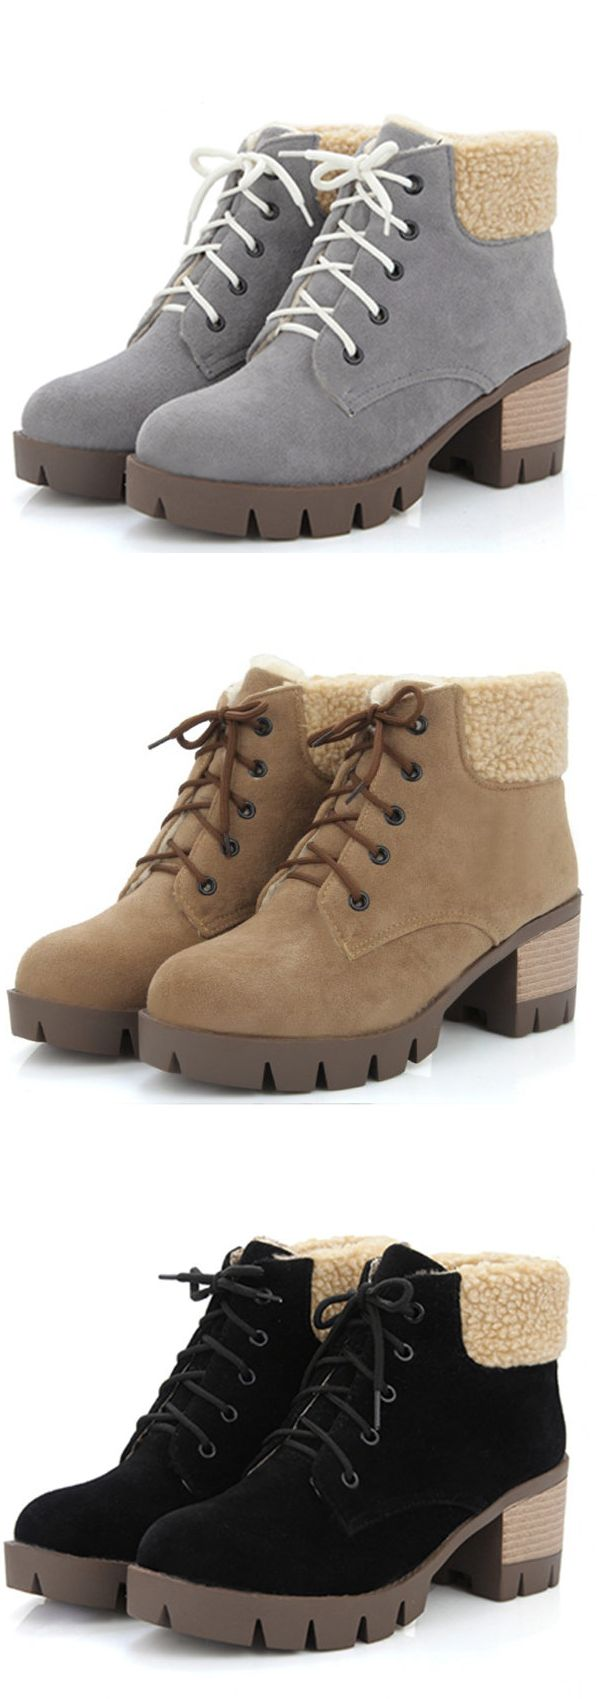 US$27.10 Pure Colour Comfortable Lace Up Warm Thick Lining Plaform Boots For Women